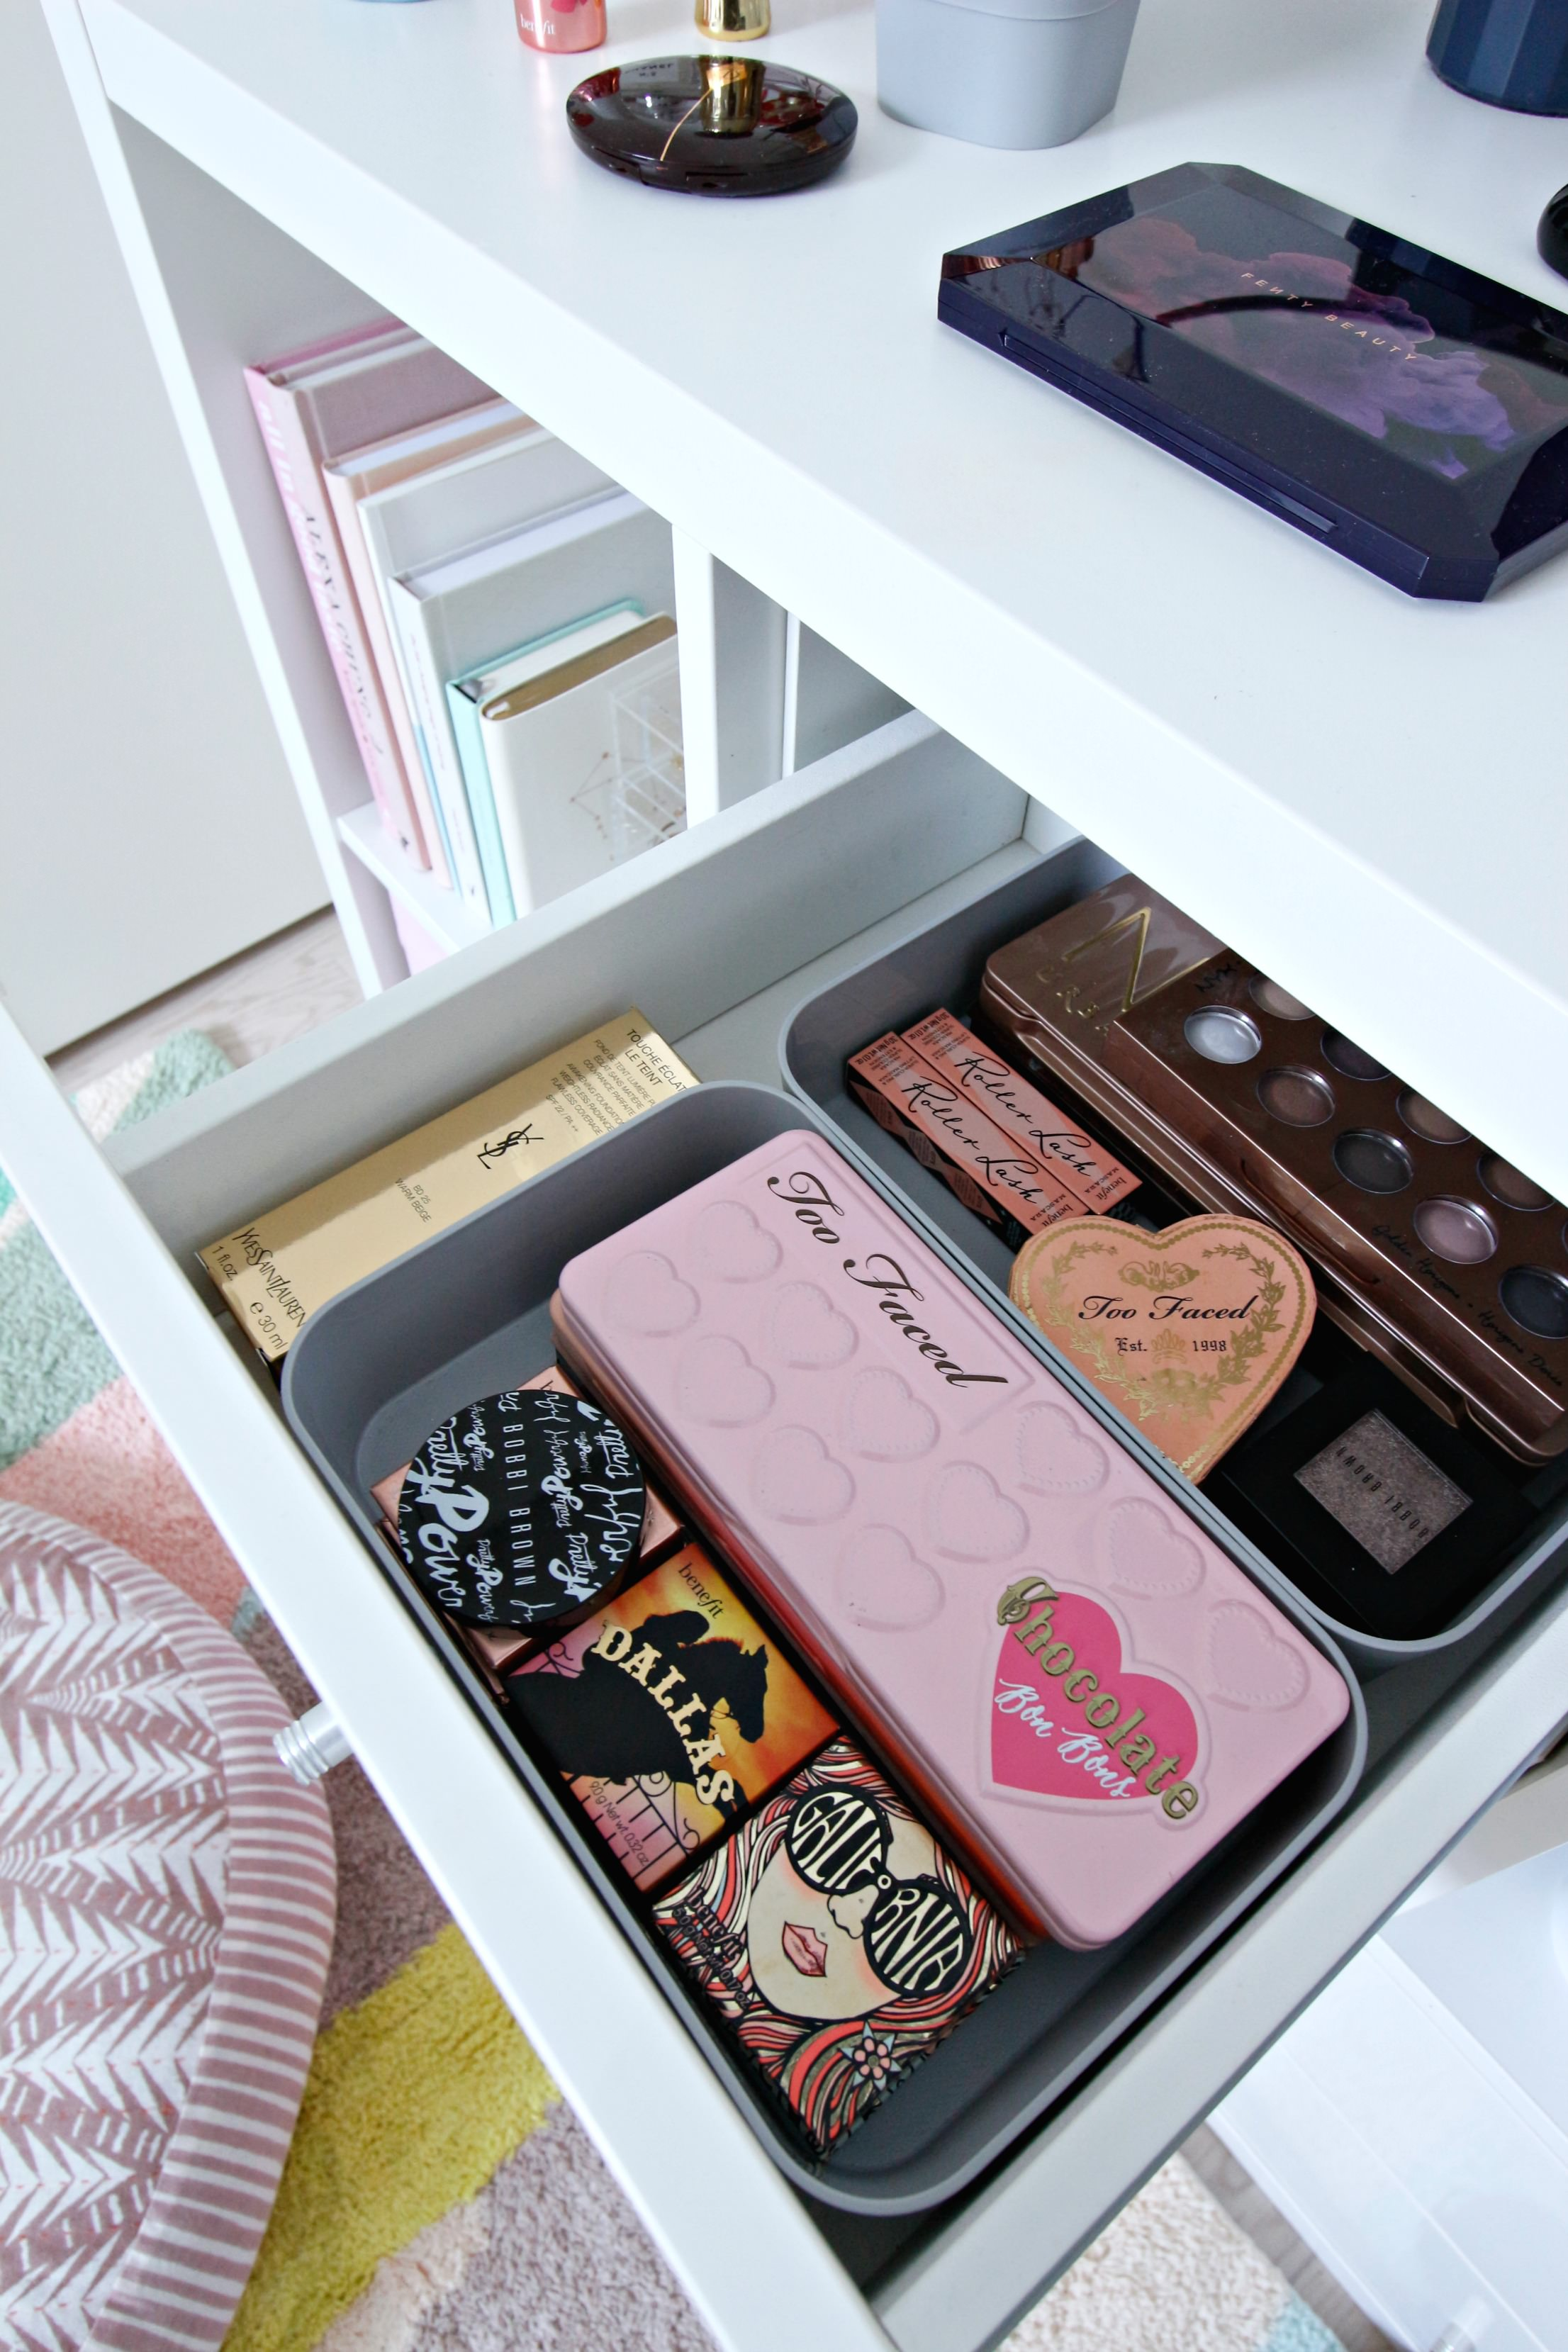 9b6bc5bee472 The Curver Infinity boxes were perfect for organising the boxes of make up  palettes.